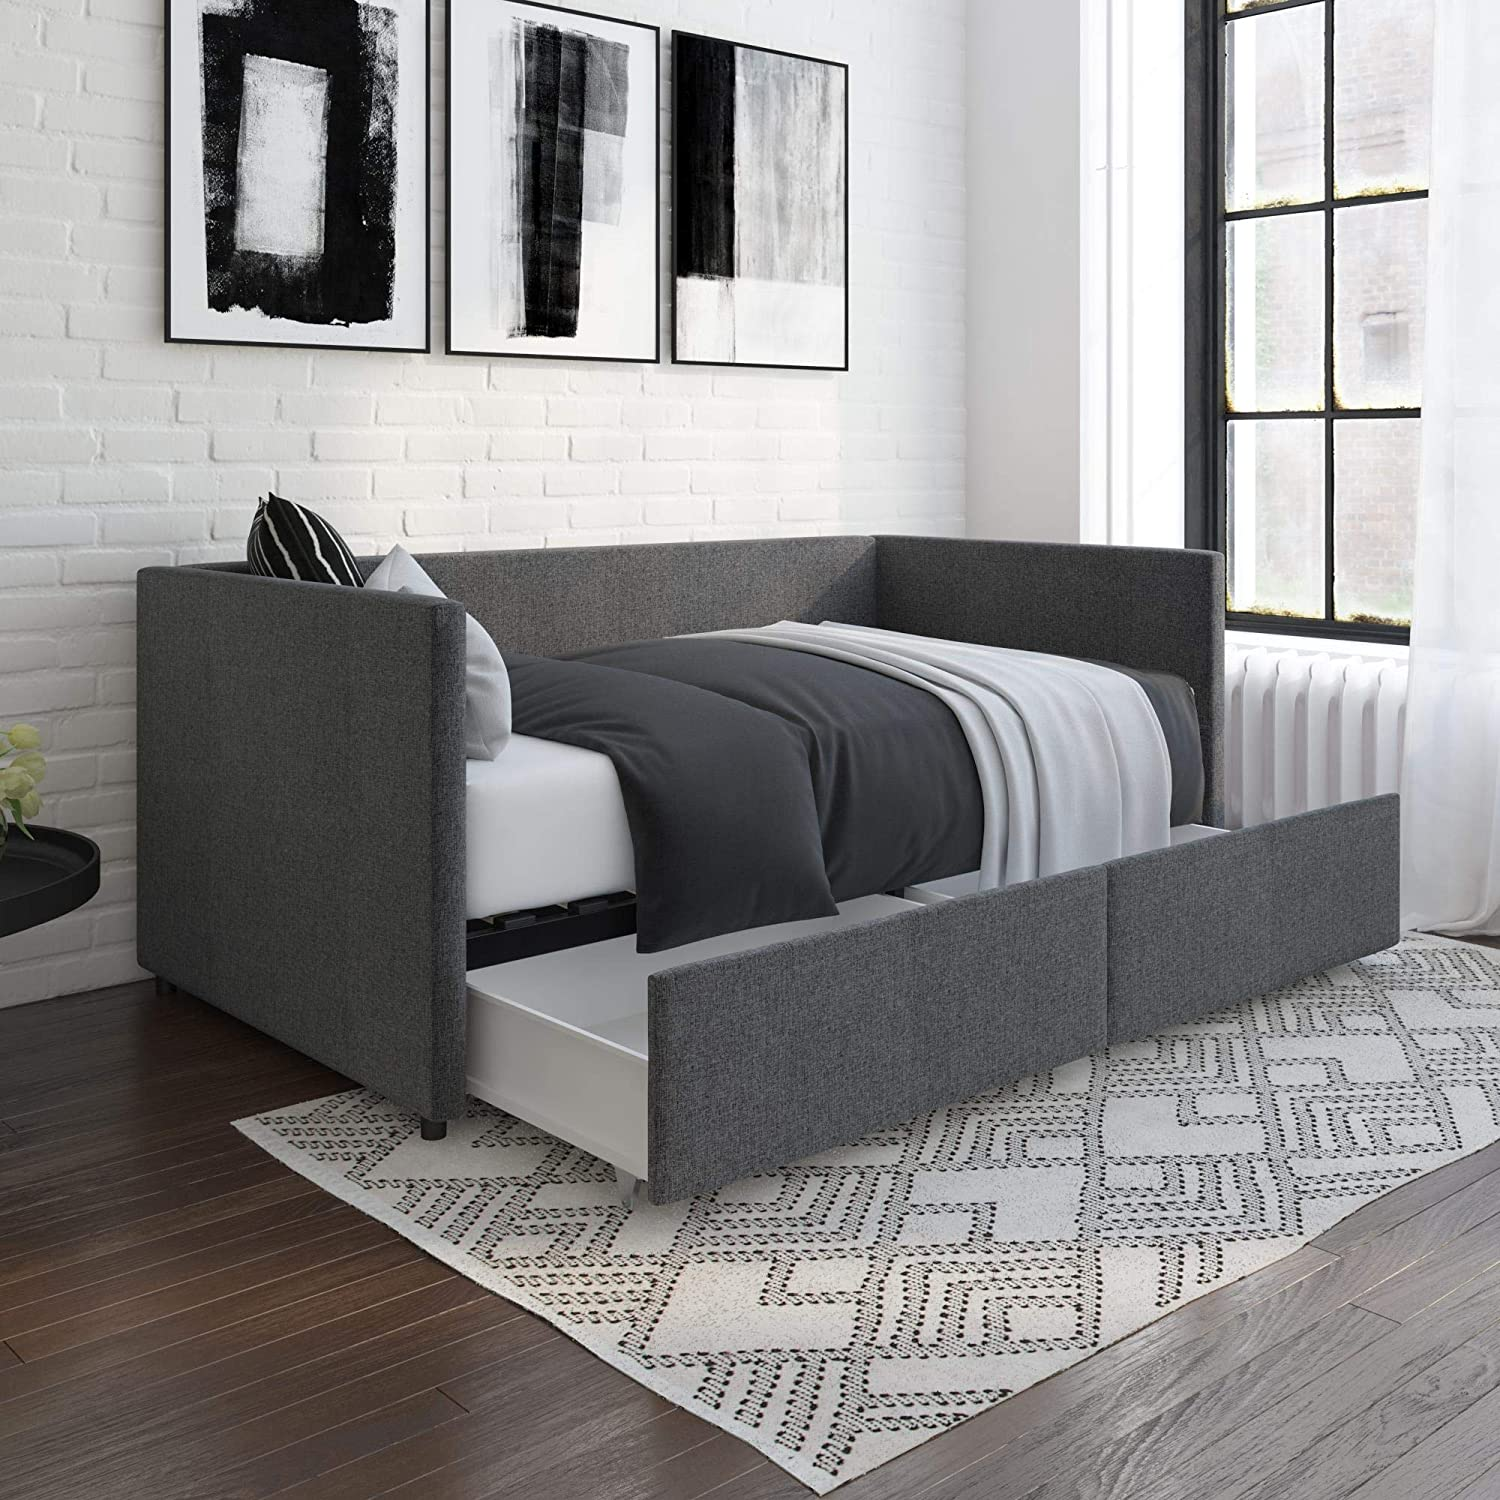 DHP Theo Urban Daybed with Storage Drawers, Small Space Furniture, Grey Linen